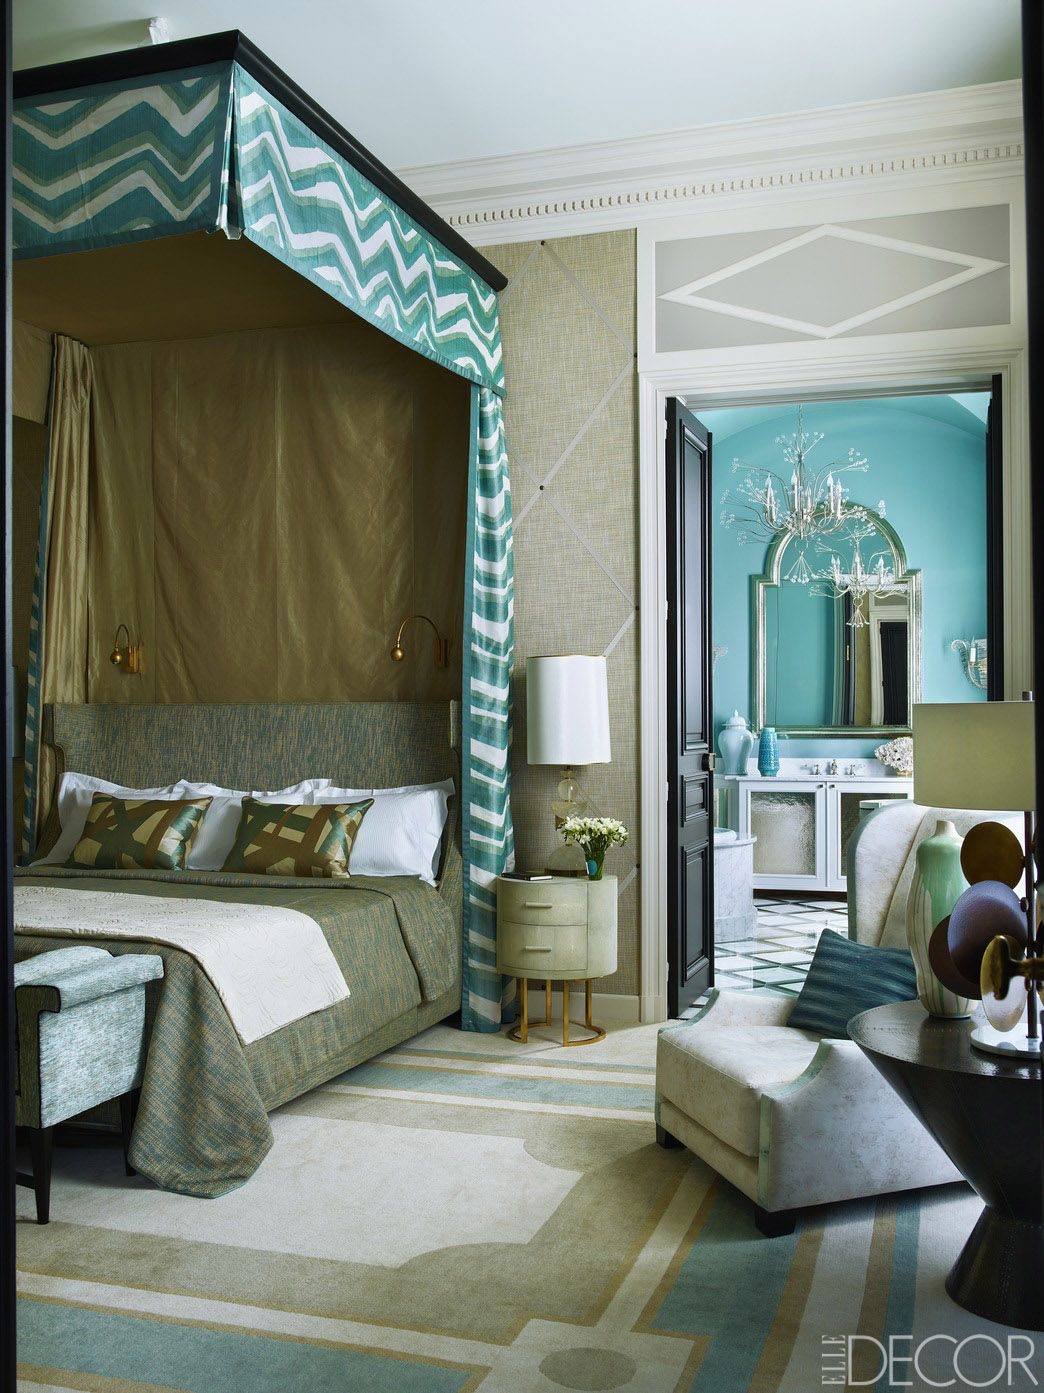 Middle Eastern Bedroom Decor House Tour So This Is How Real Princesses Live Middle Silk And